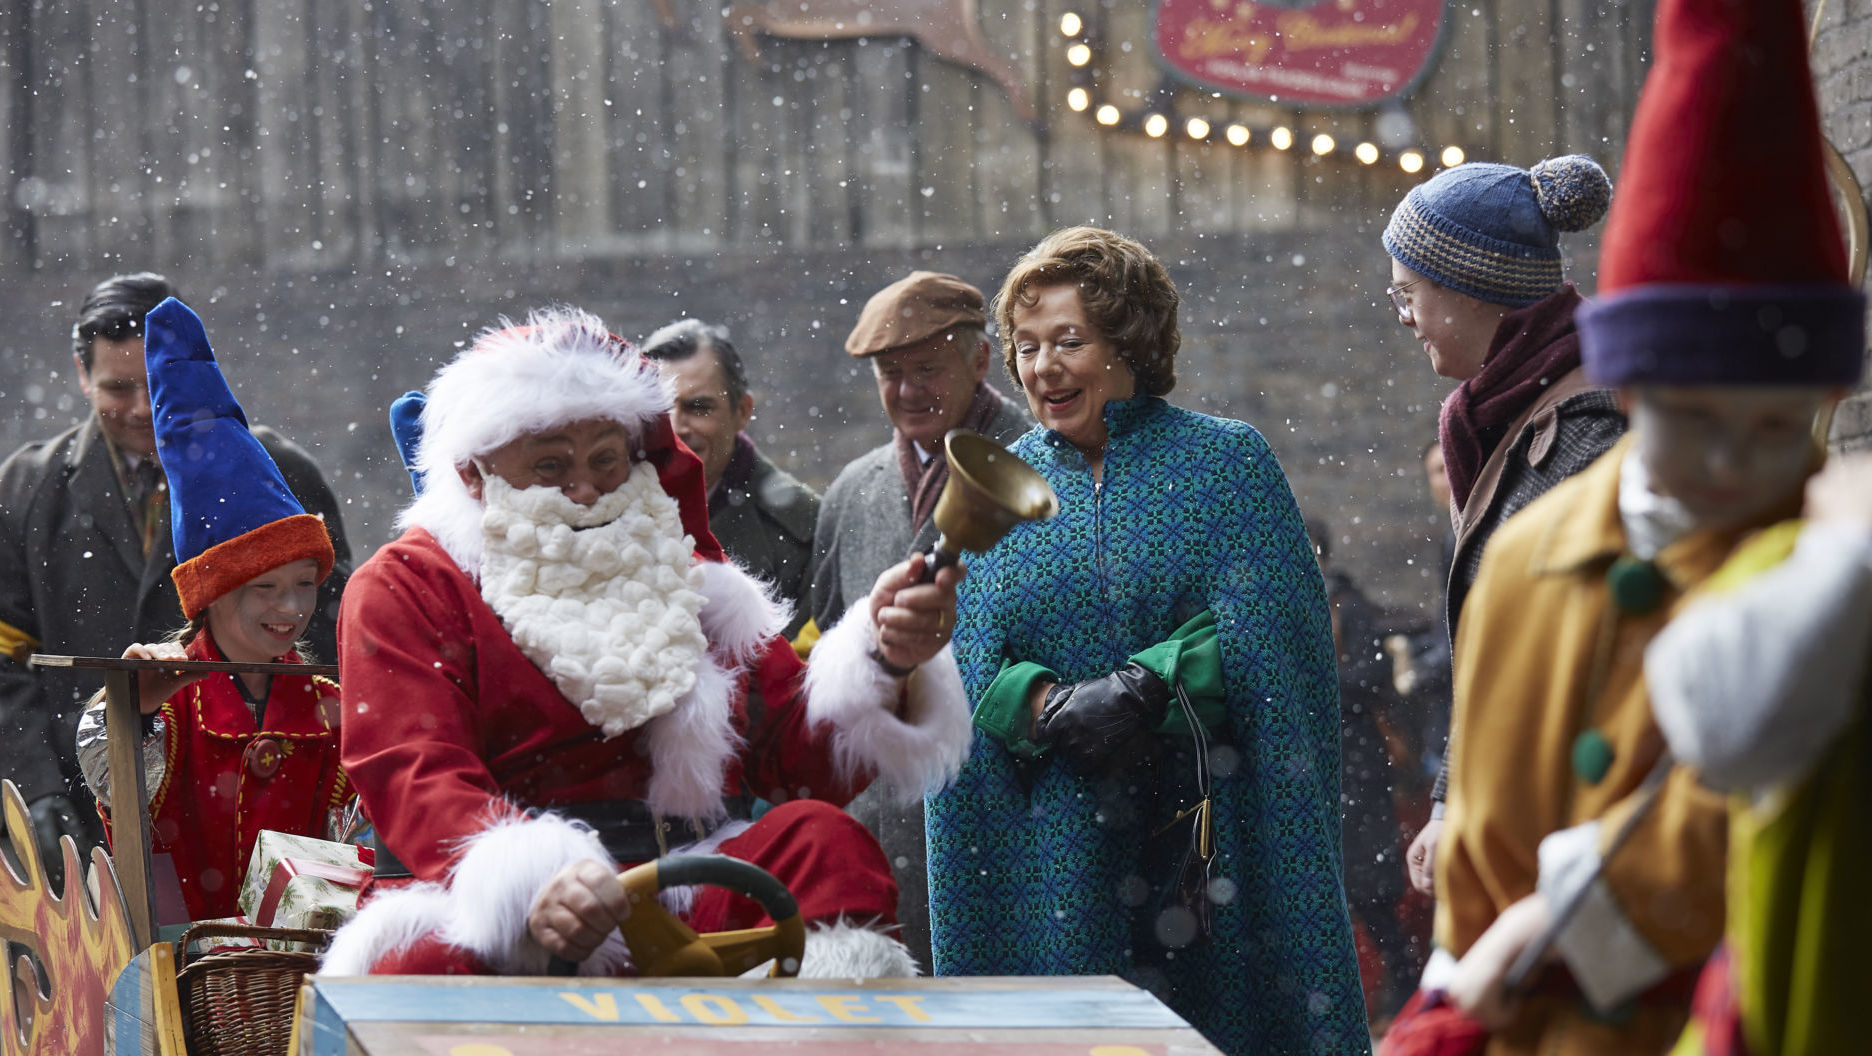 Local Holiday Programs on TV December